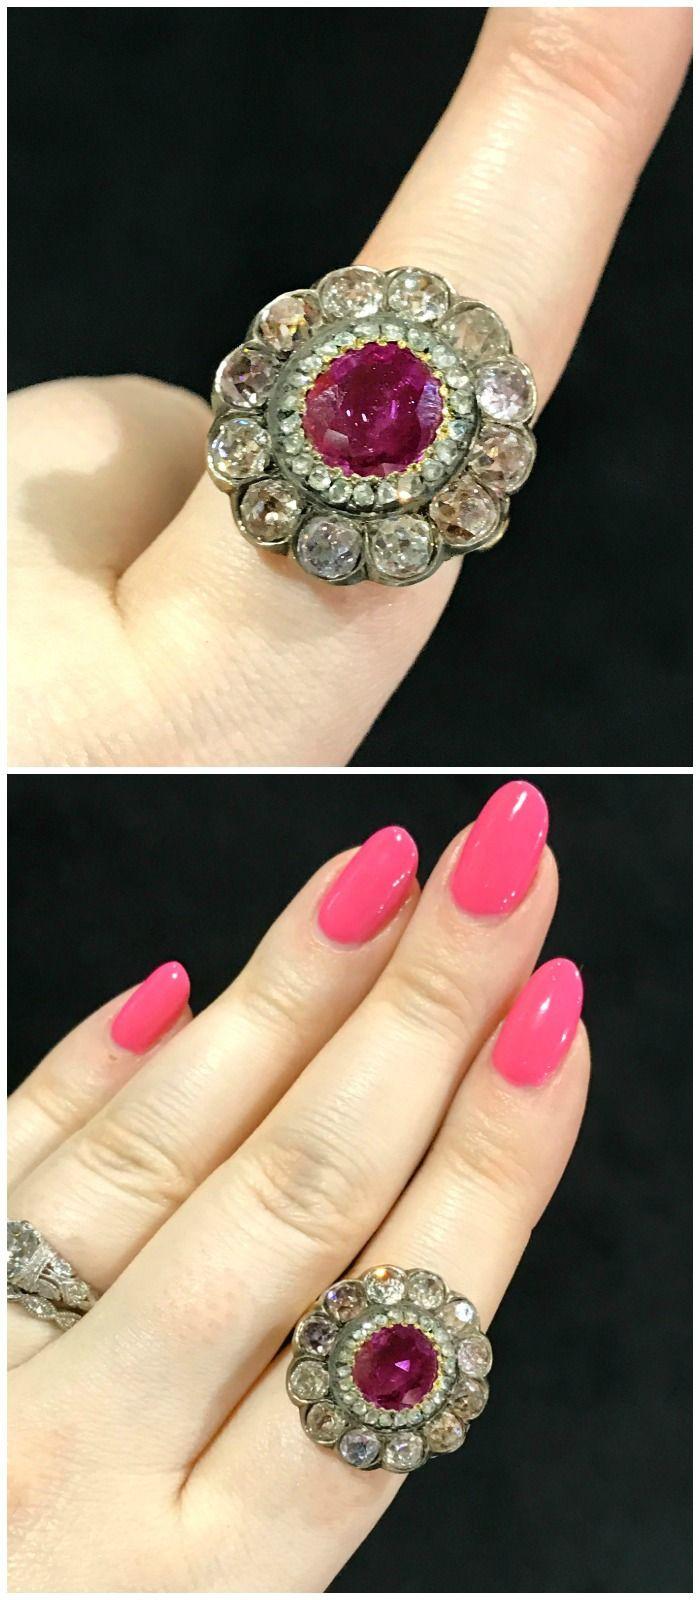 An incredible ruby ring with pink diamonds, from the Georgian Era. Spotted at Jogani, at the Original Miami Antique Show.